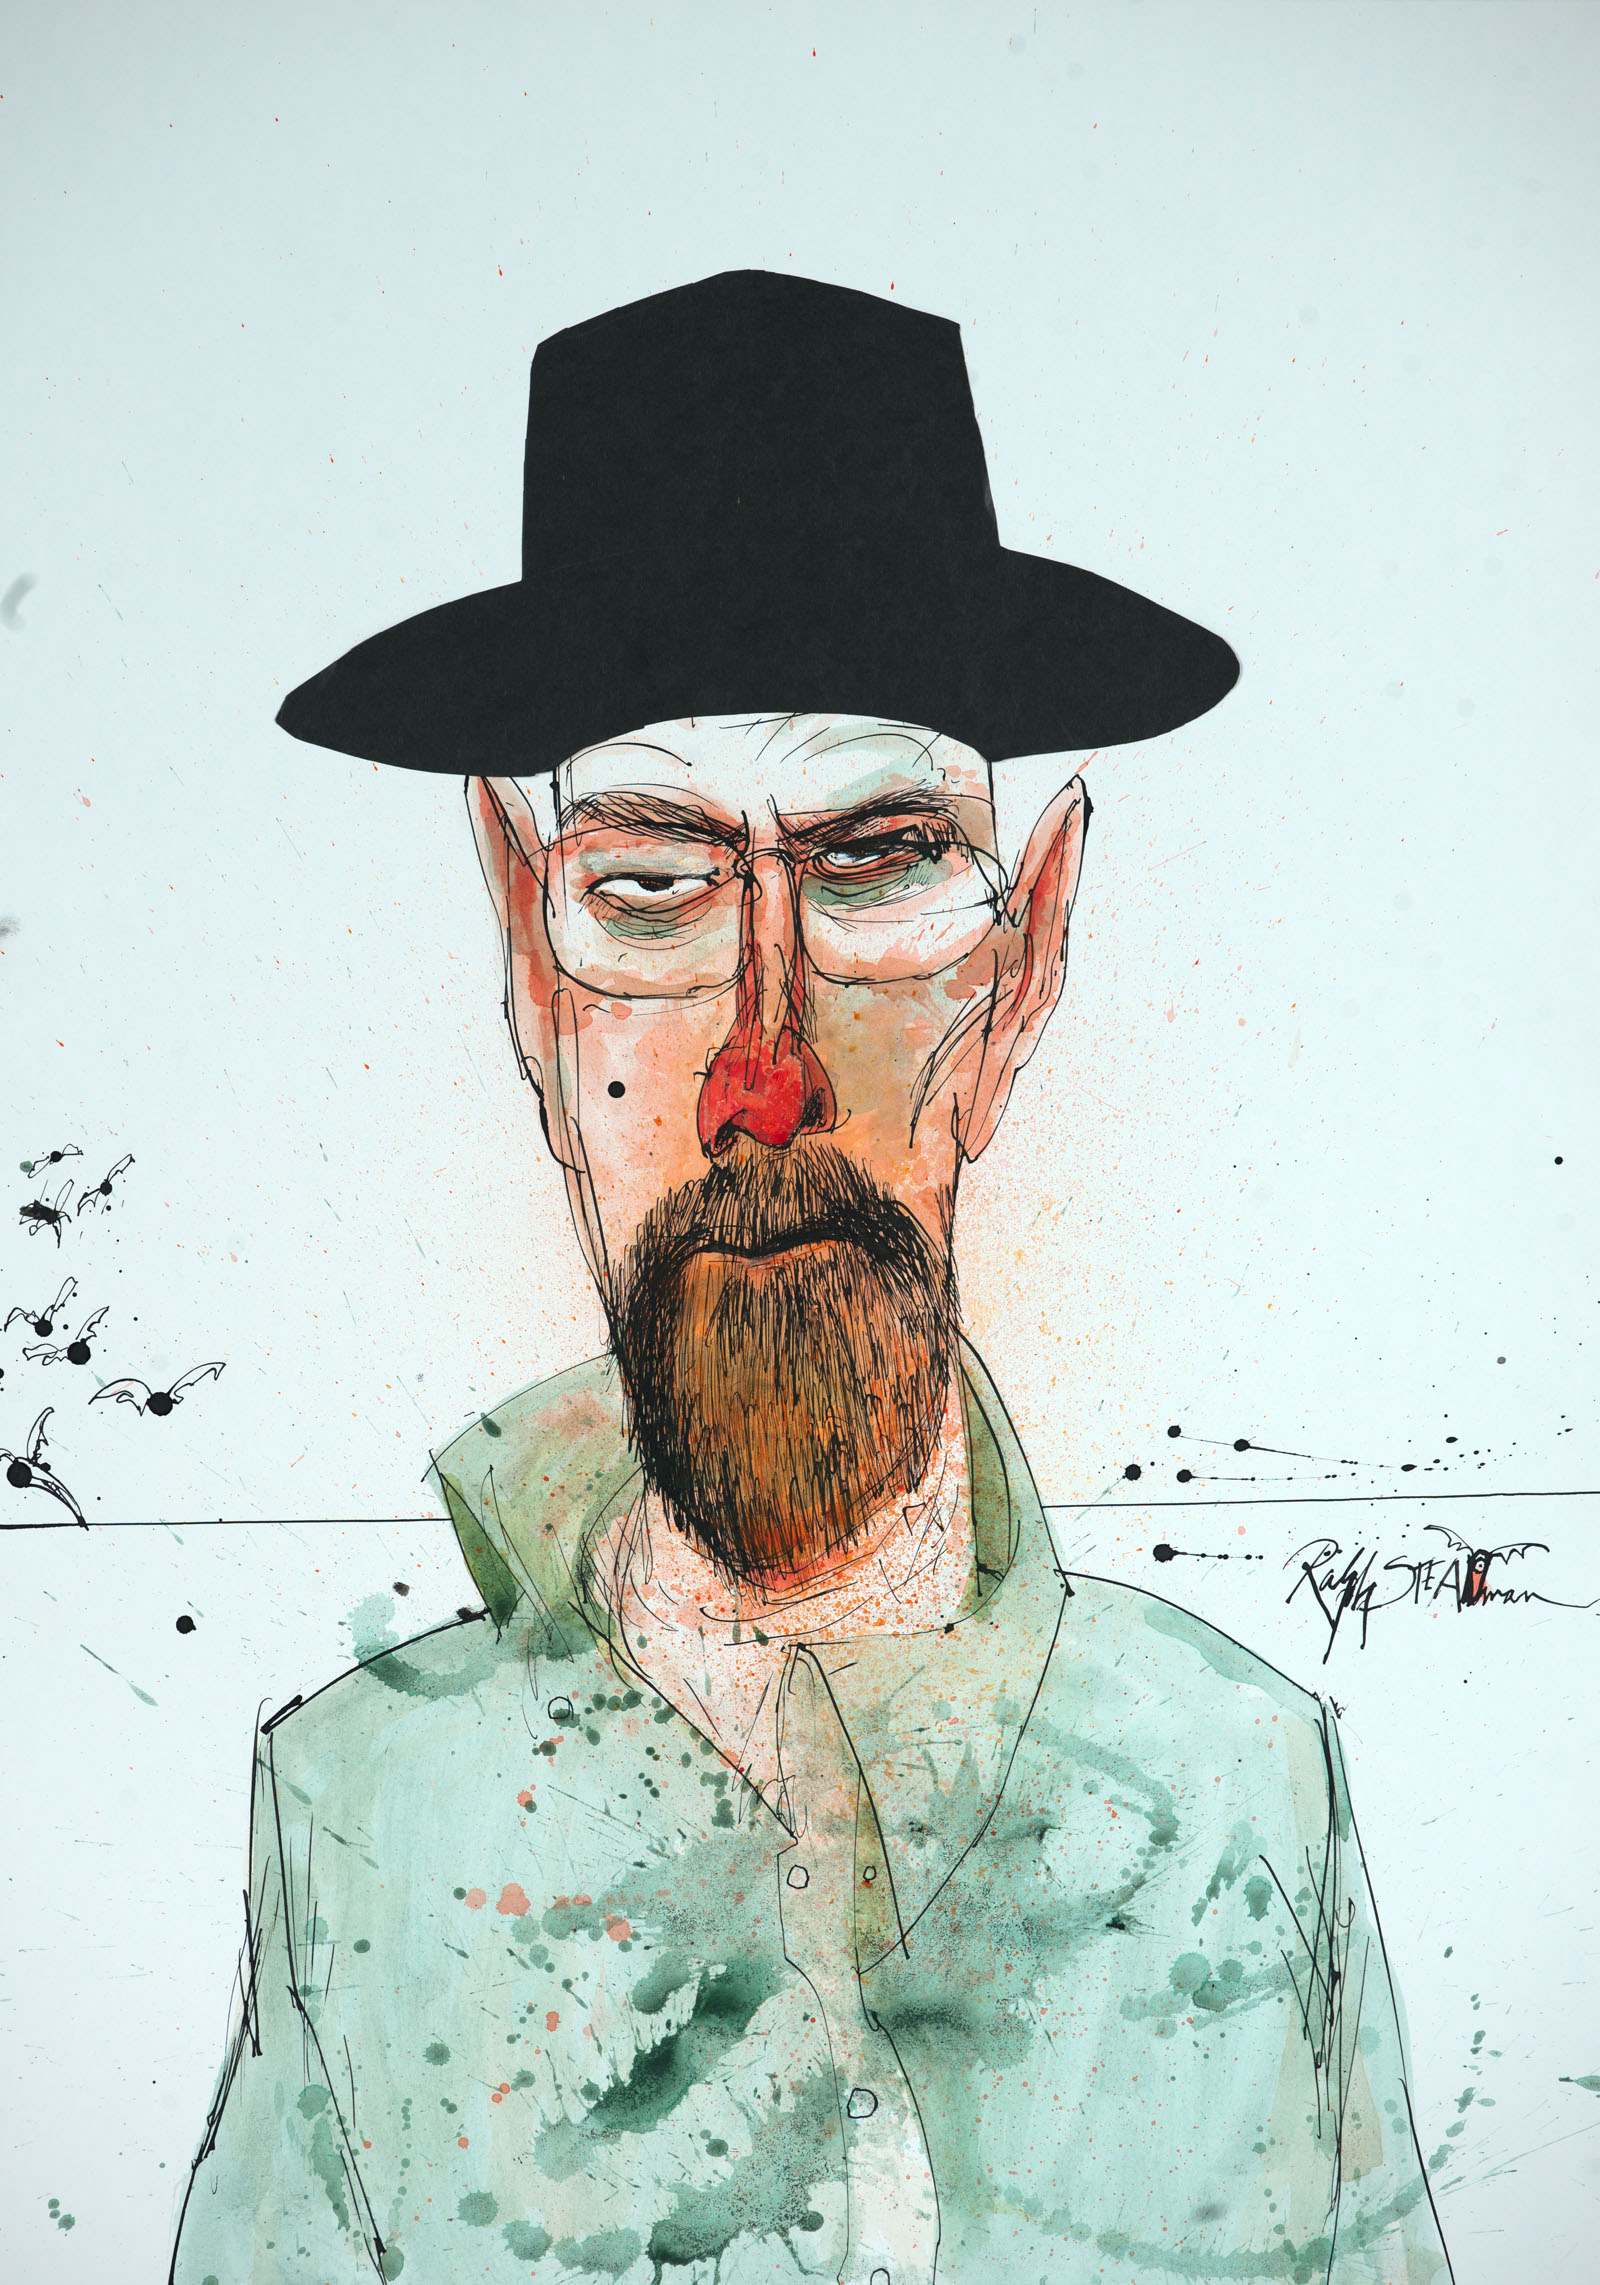 A portrait of the character, Walter White from the TV show, Breaking Bad by Ralph Steadman